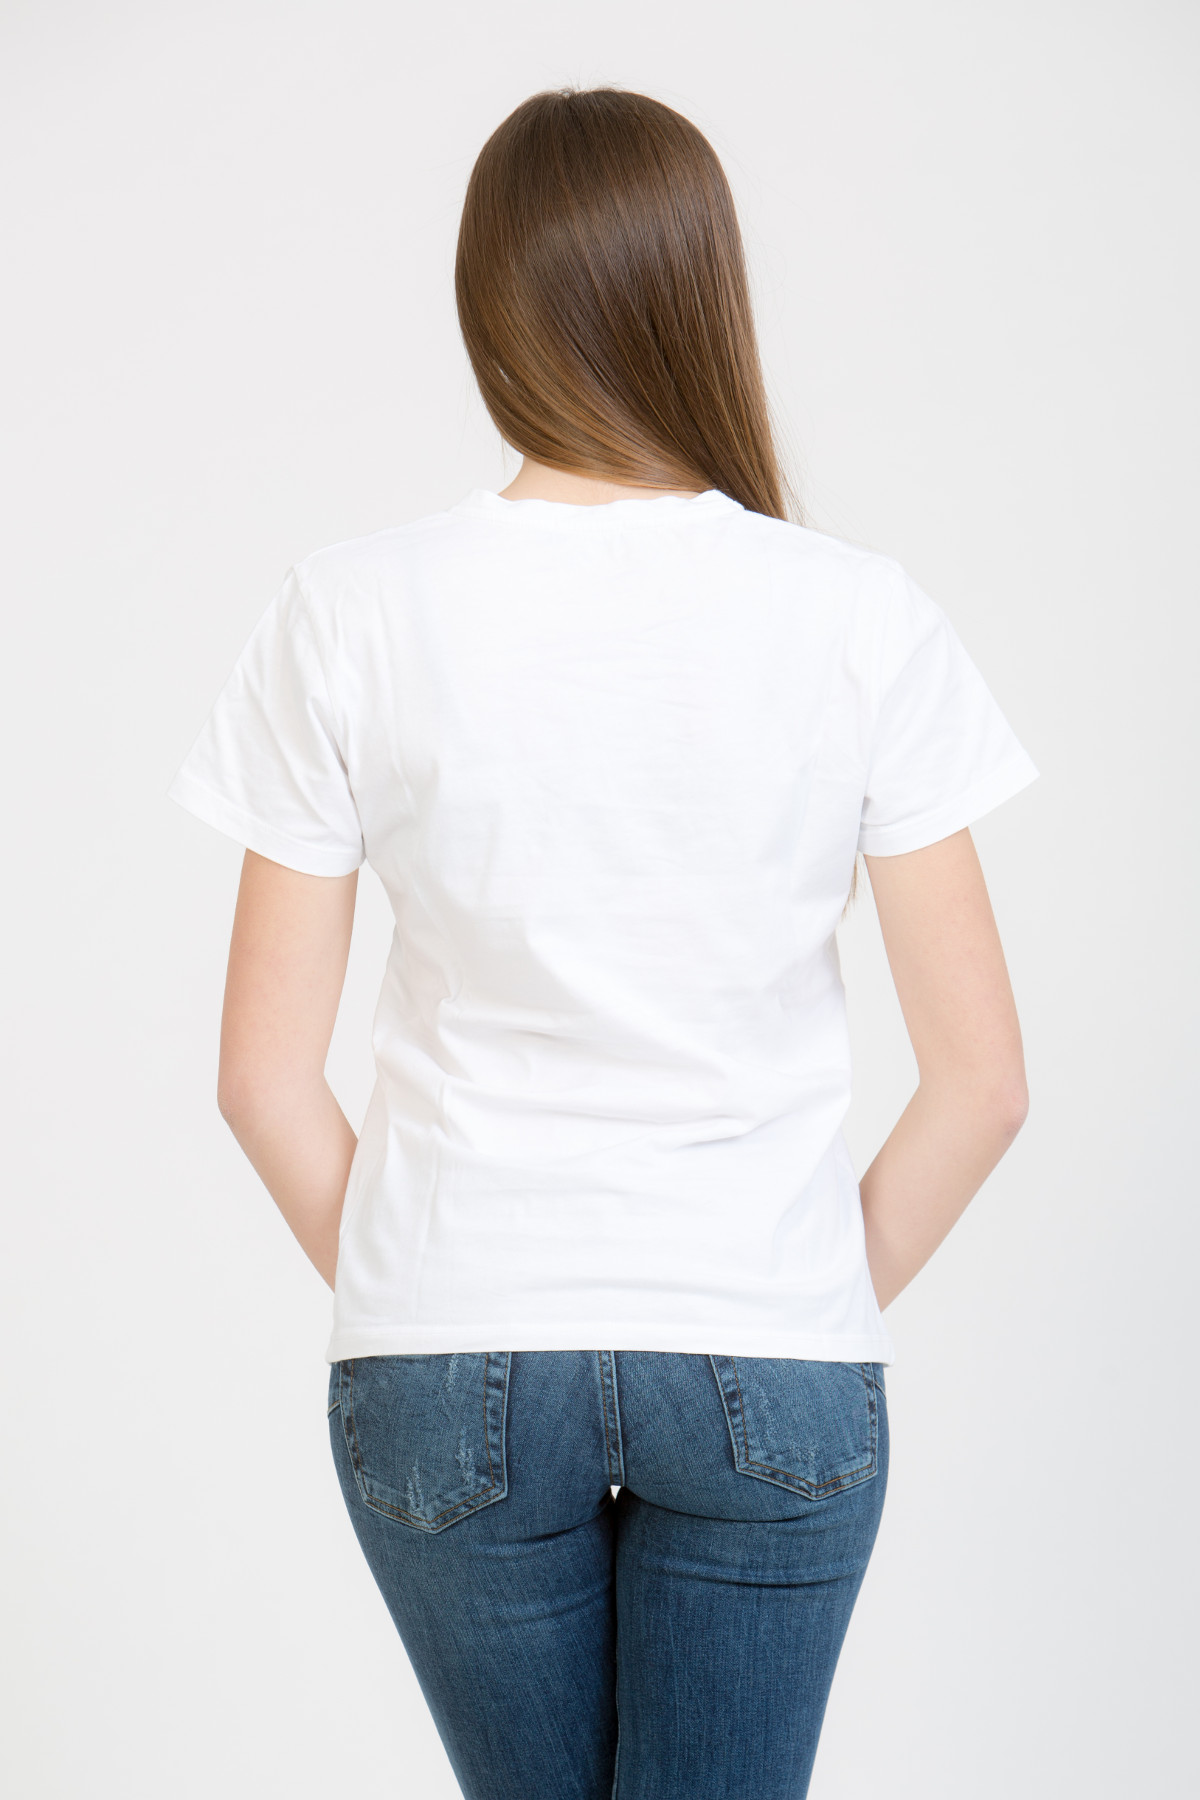 LERÊVERIES - T-shirt Donna Eco DREAM Colore Bianco - C